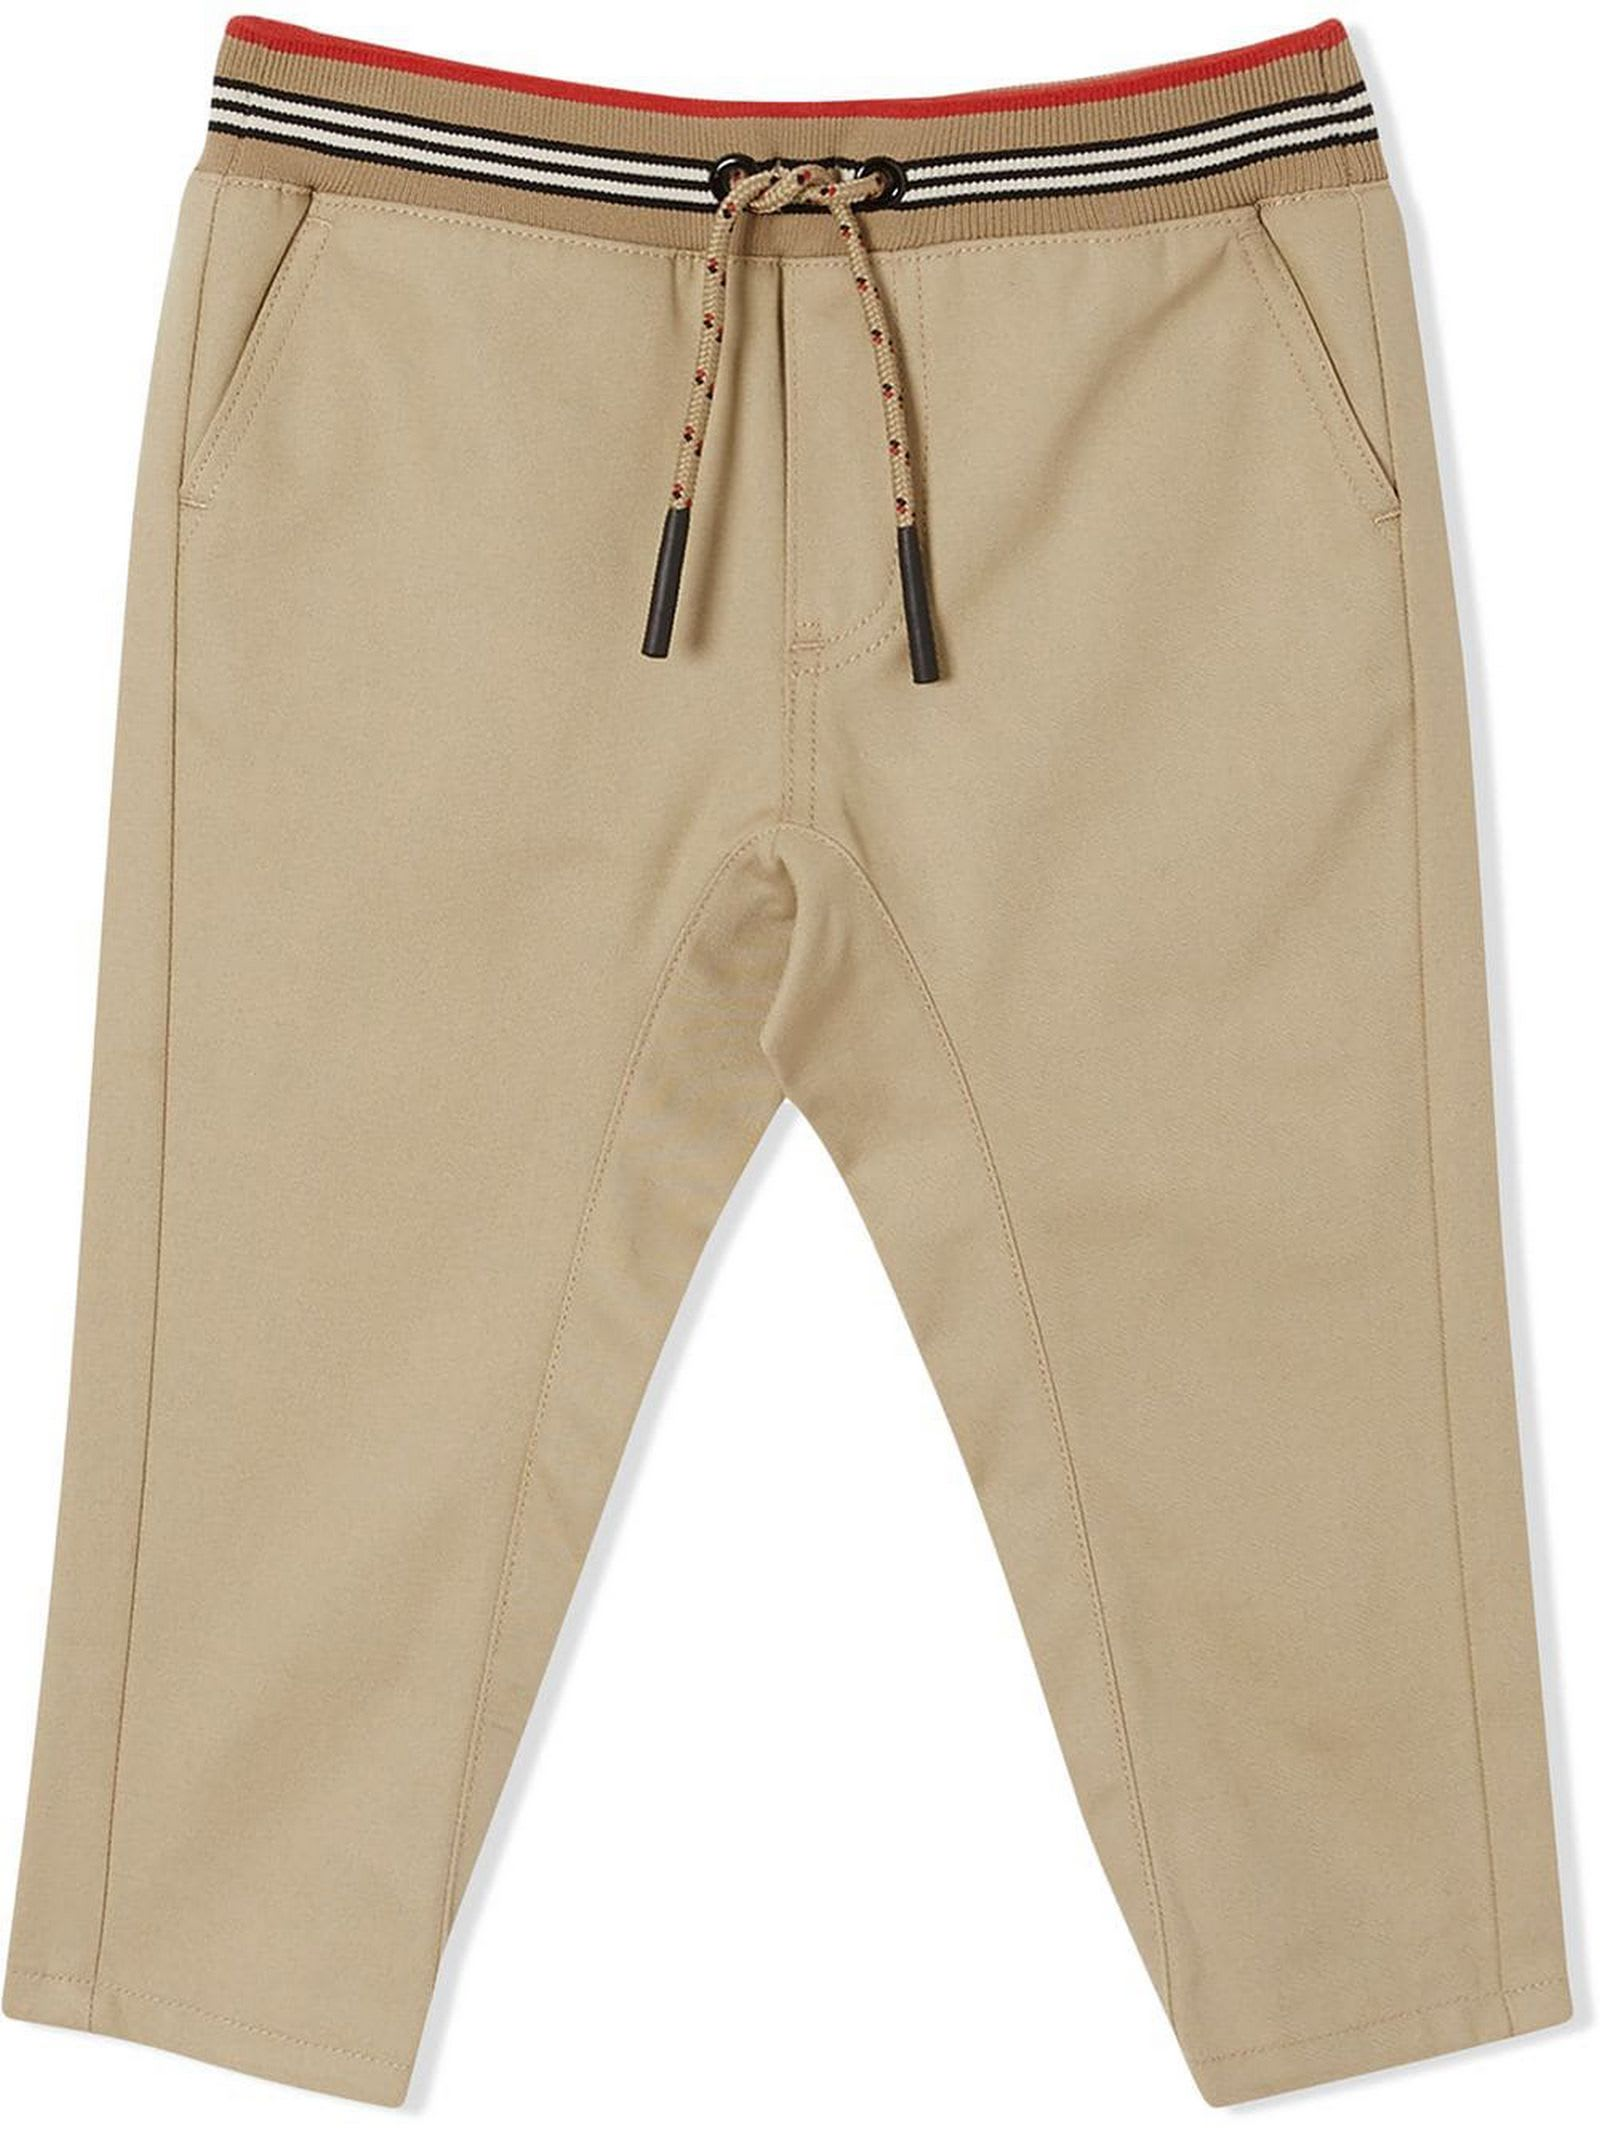 BURBERRY HONEY BEIGE COTTON TROUSERS